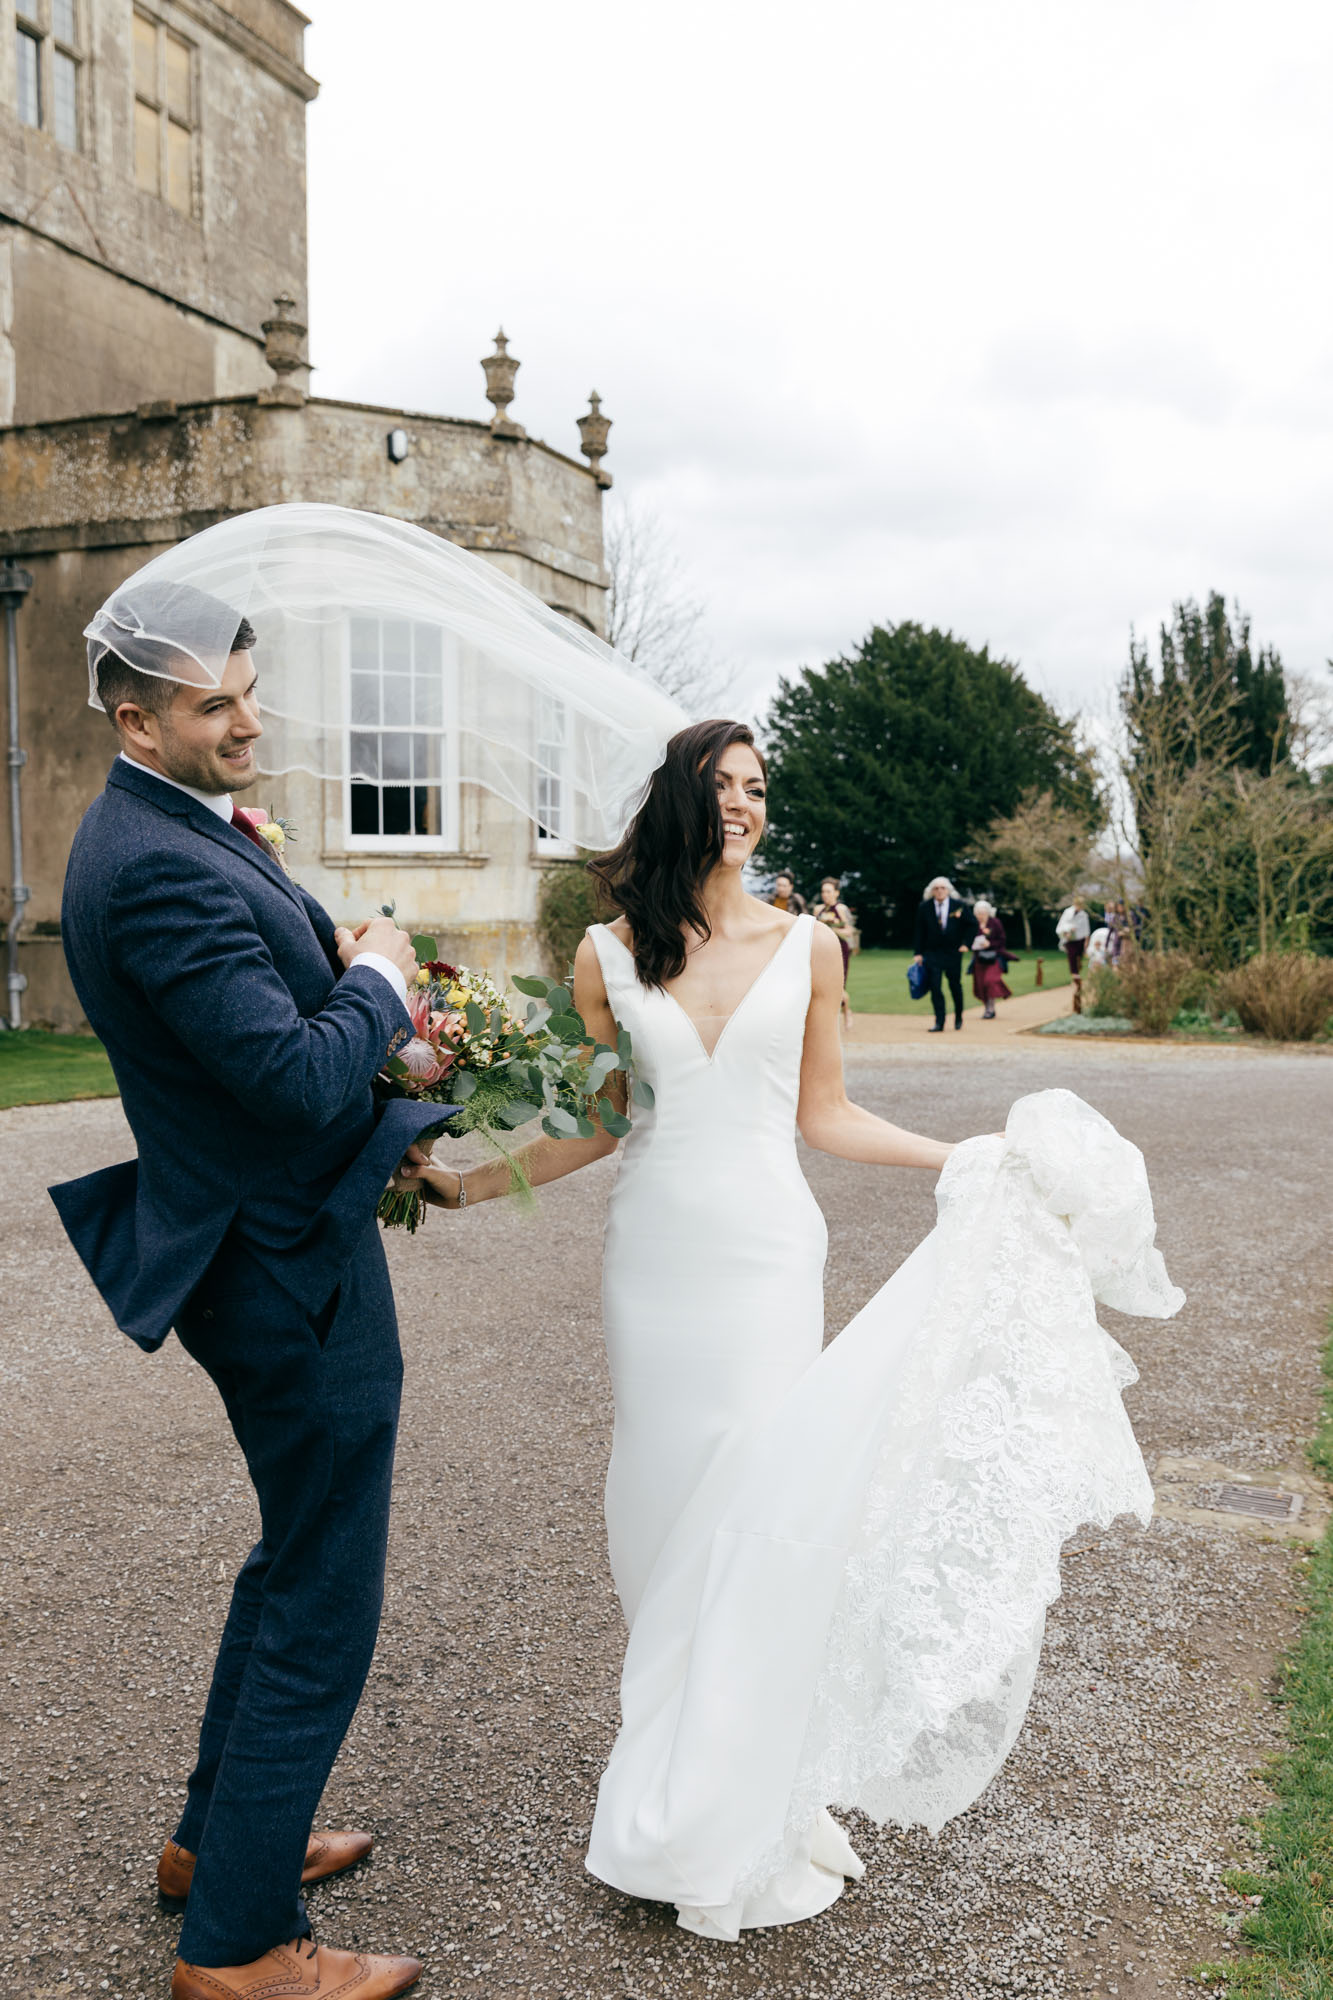 Natural wedding photography at Elmore Court Gloucestershire